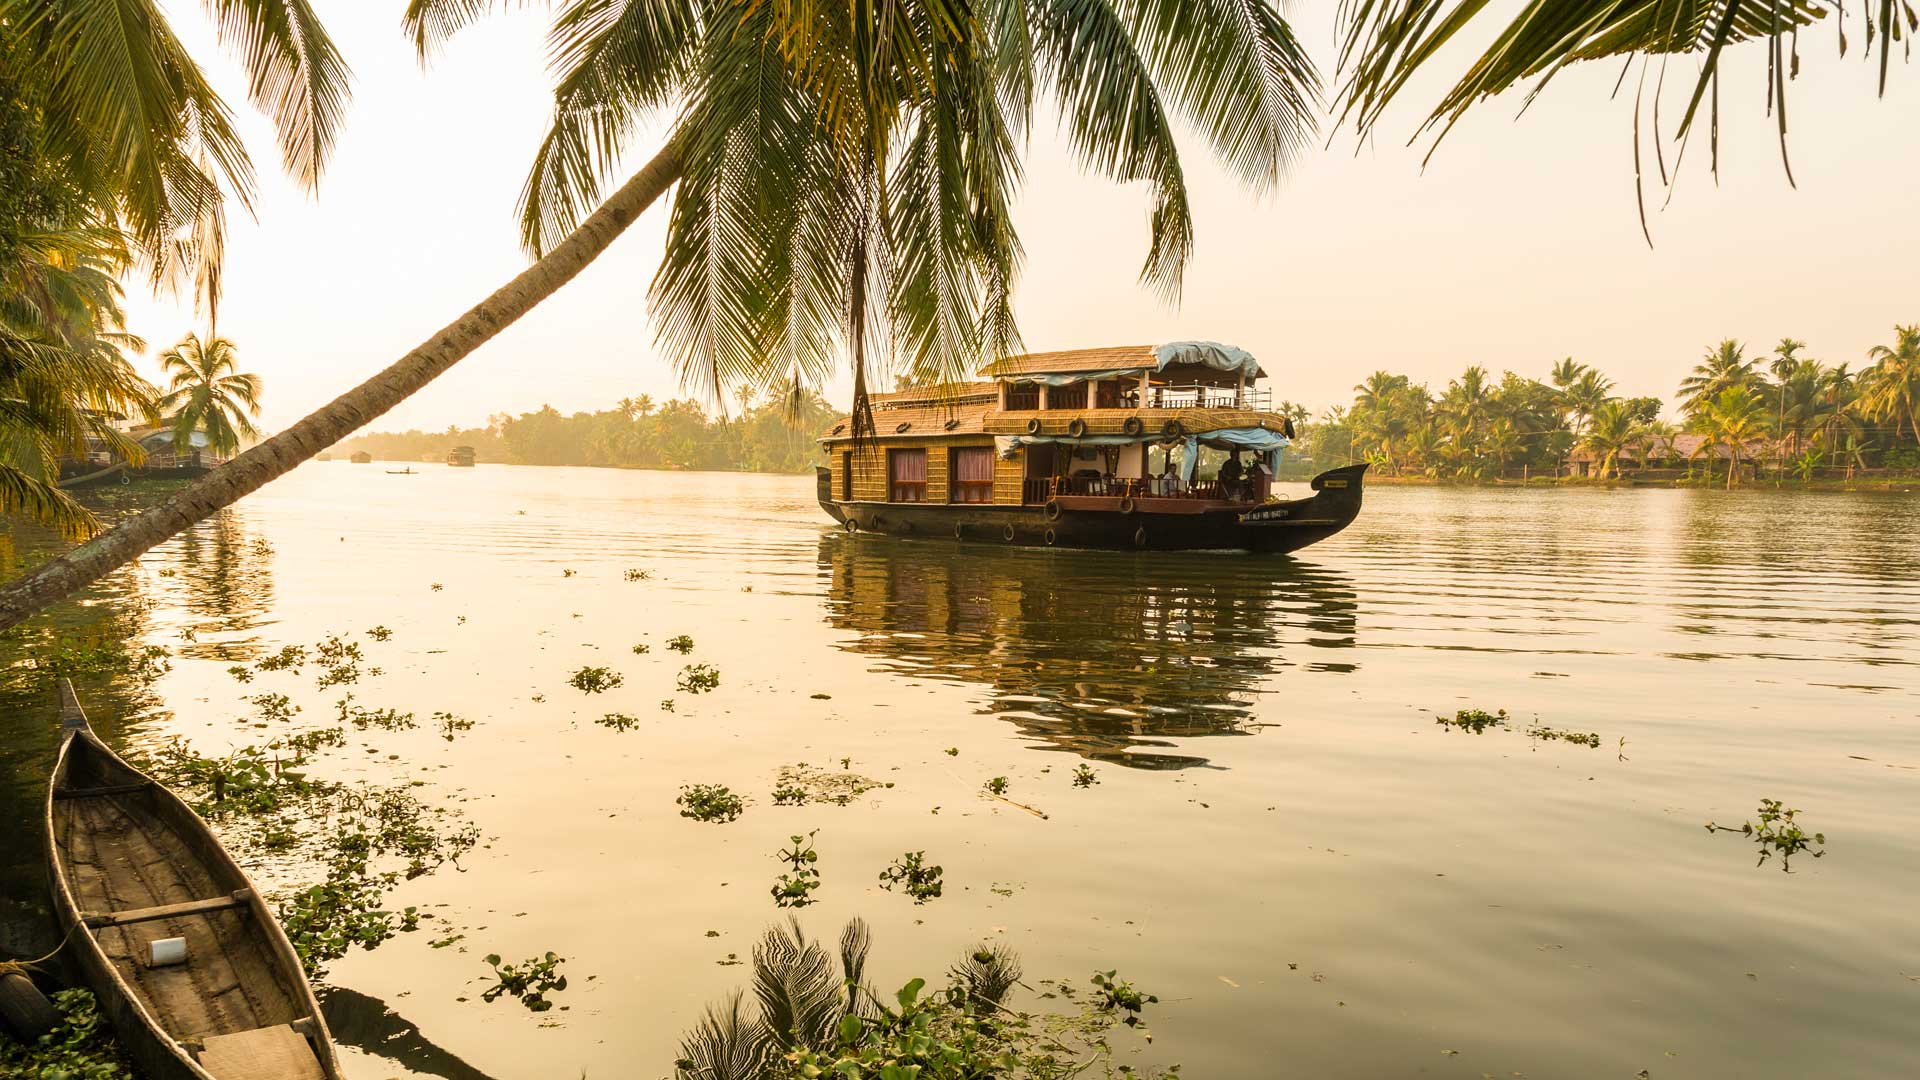 Traditional house boat navigating the Kerala backwaters near Alleppey, India with GeoEx